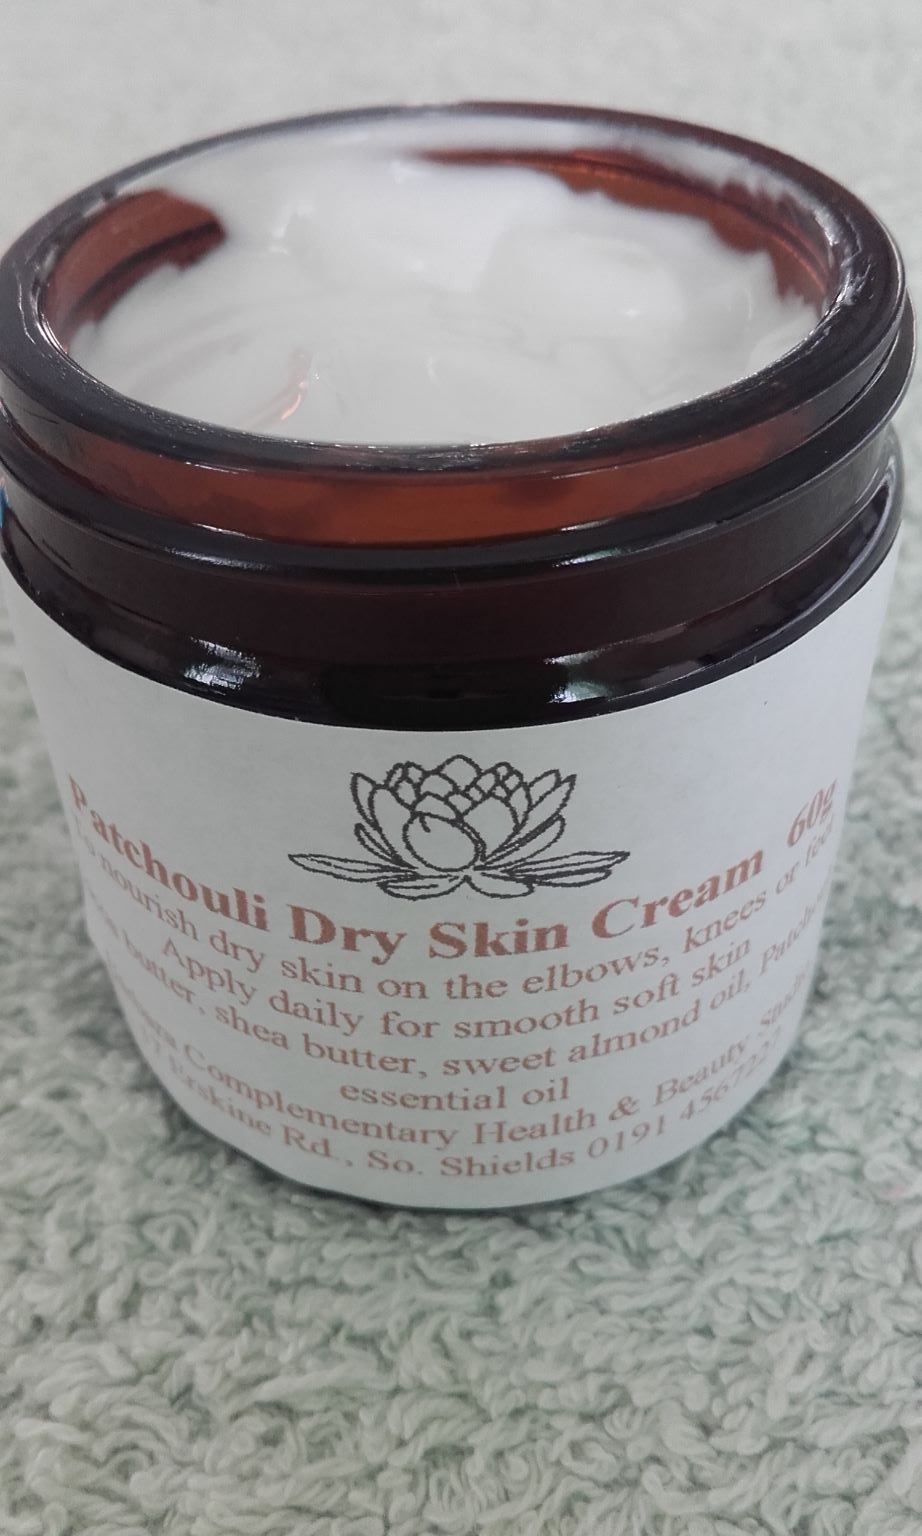 Patchouli Dry Skin Cream (60g)